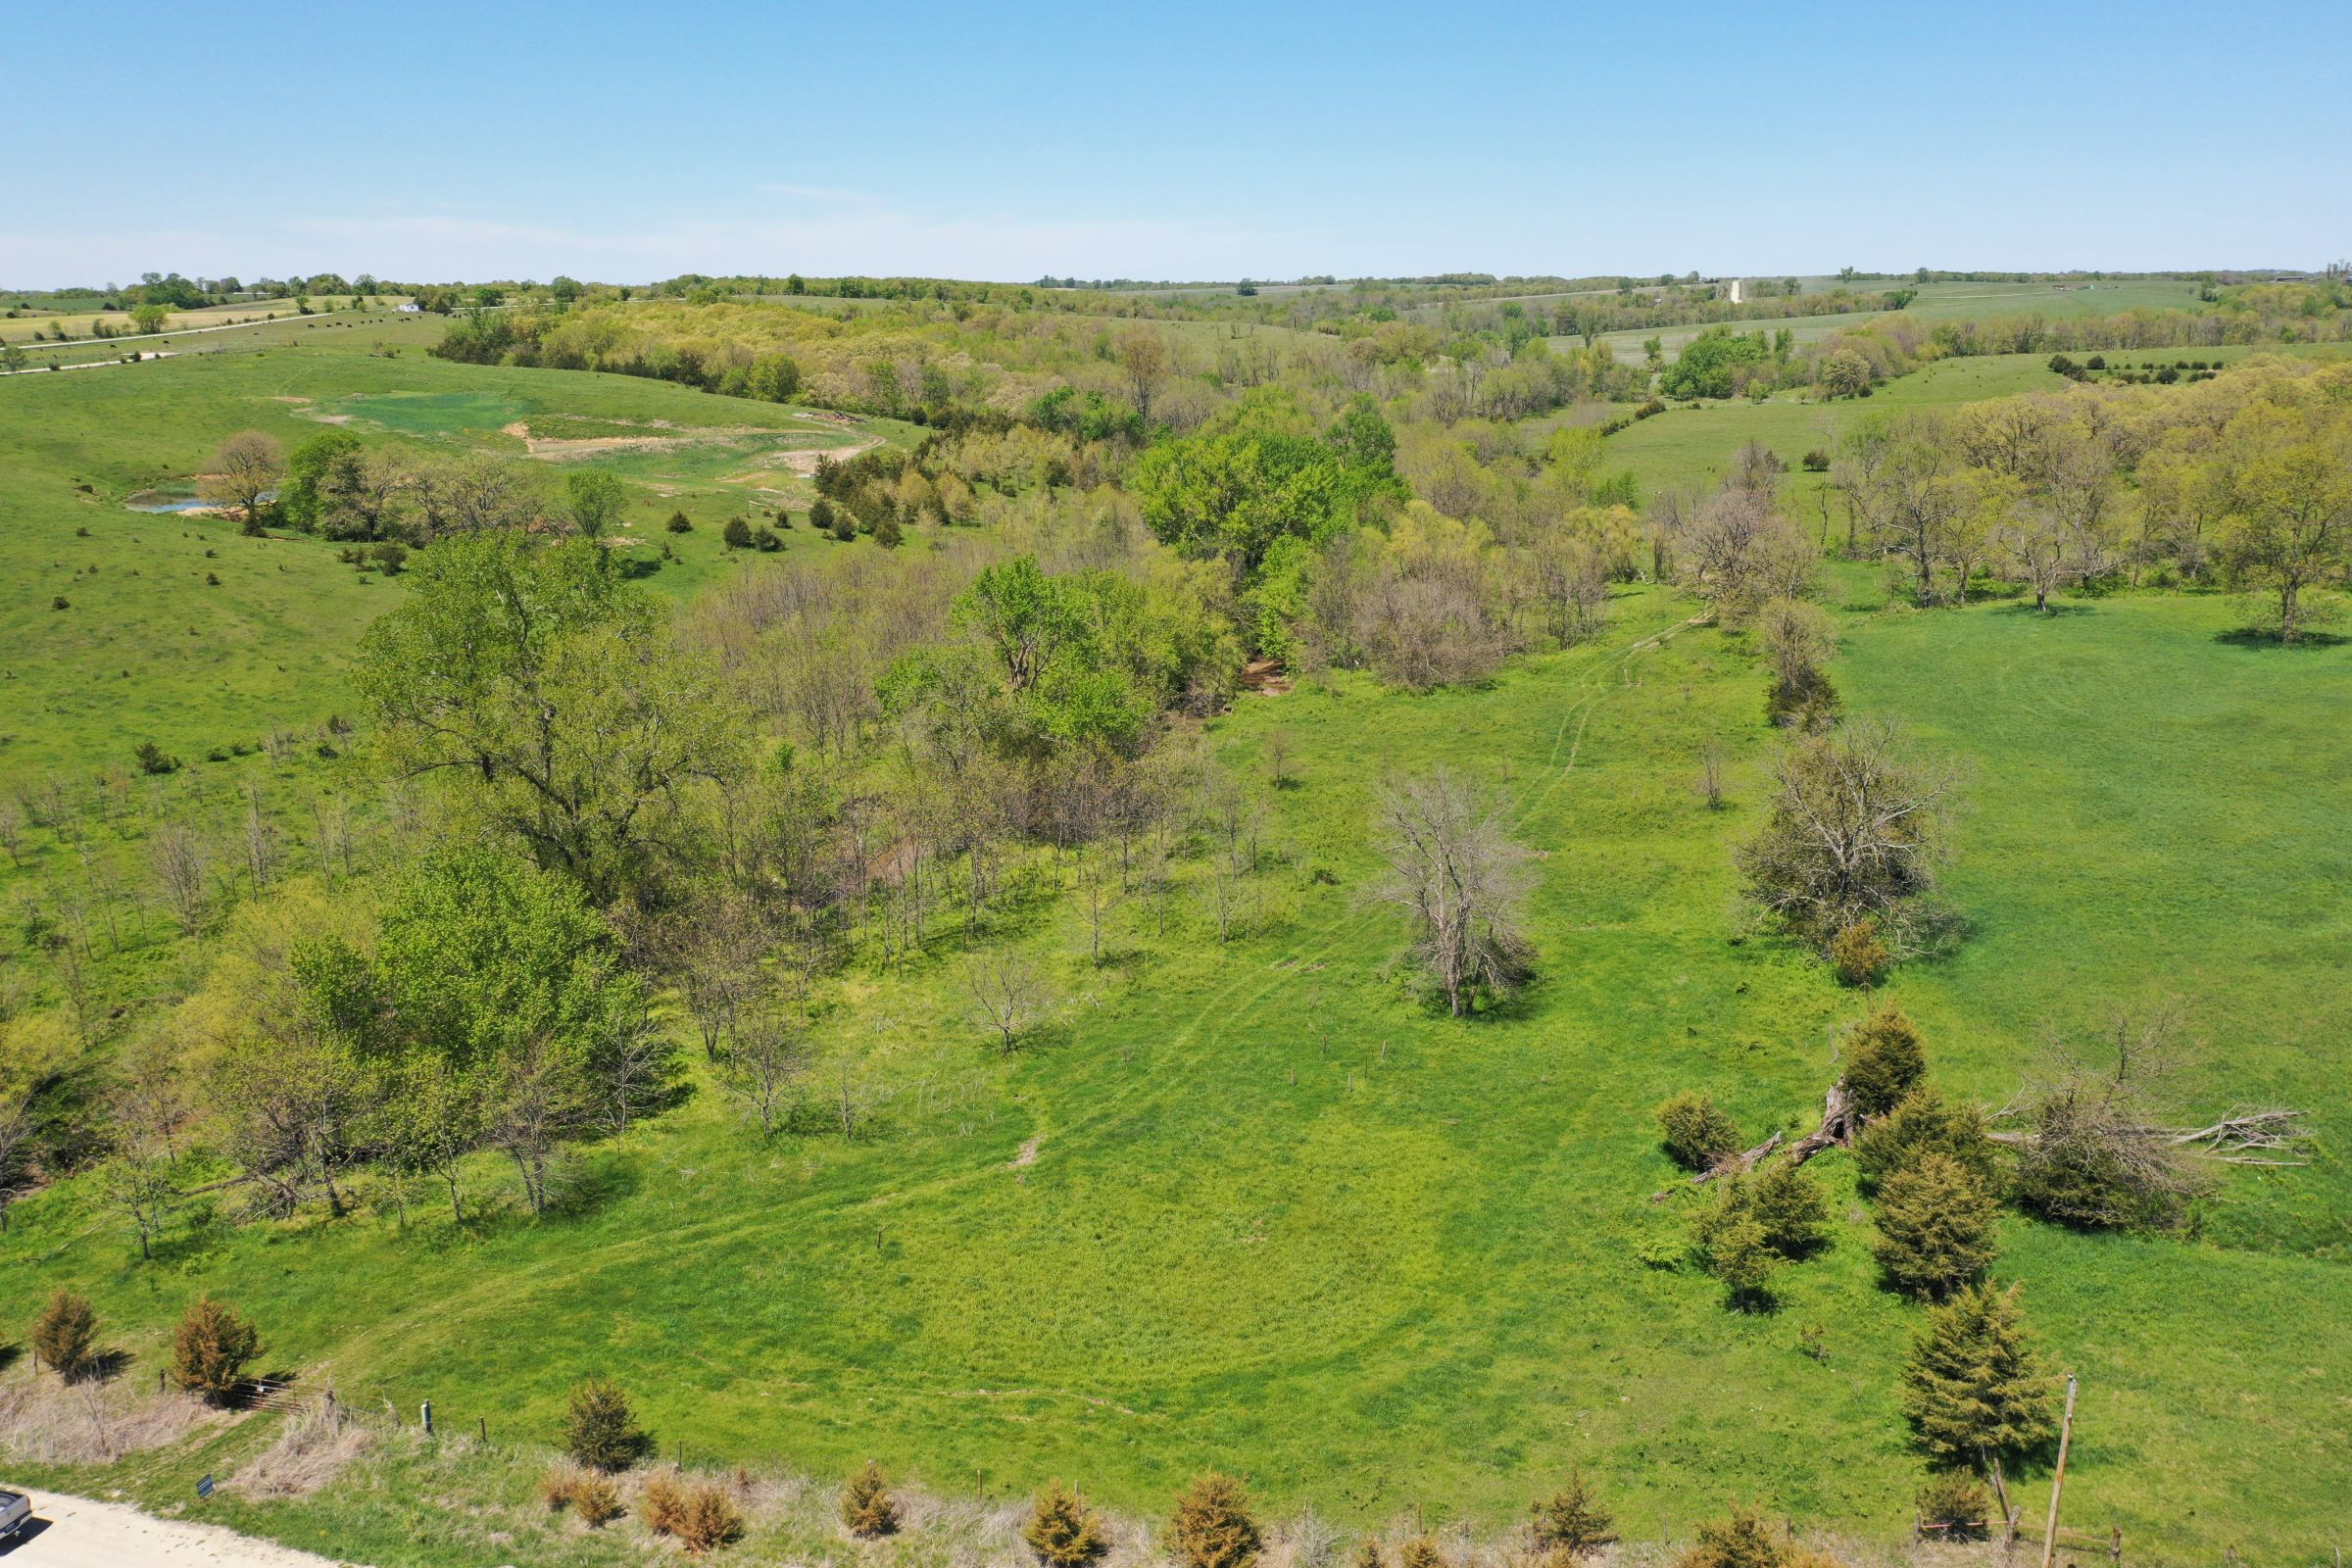 land-decatur-county-iowa-99-acres-listing-number-15525-3-2021-05-14-172510.JPG